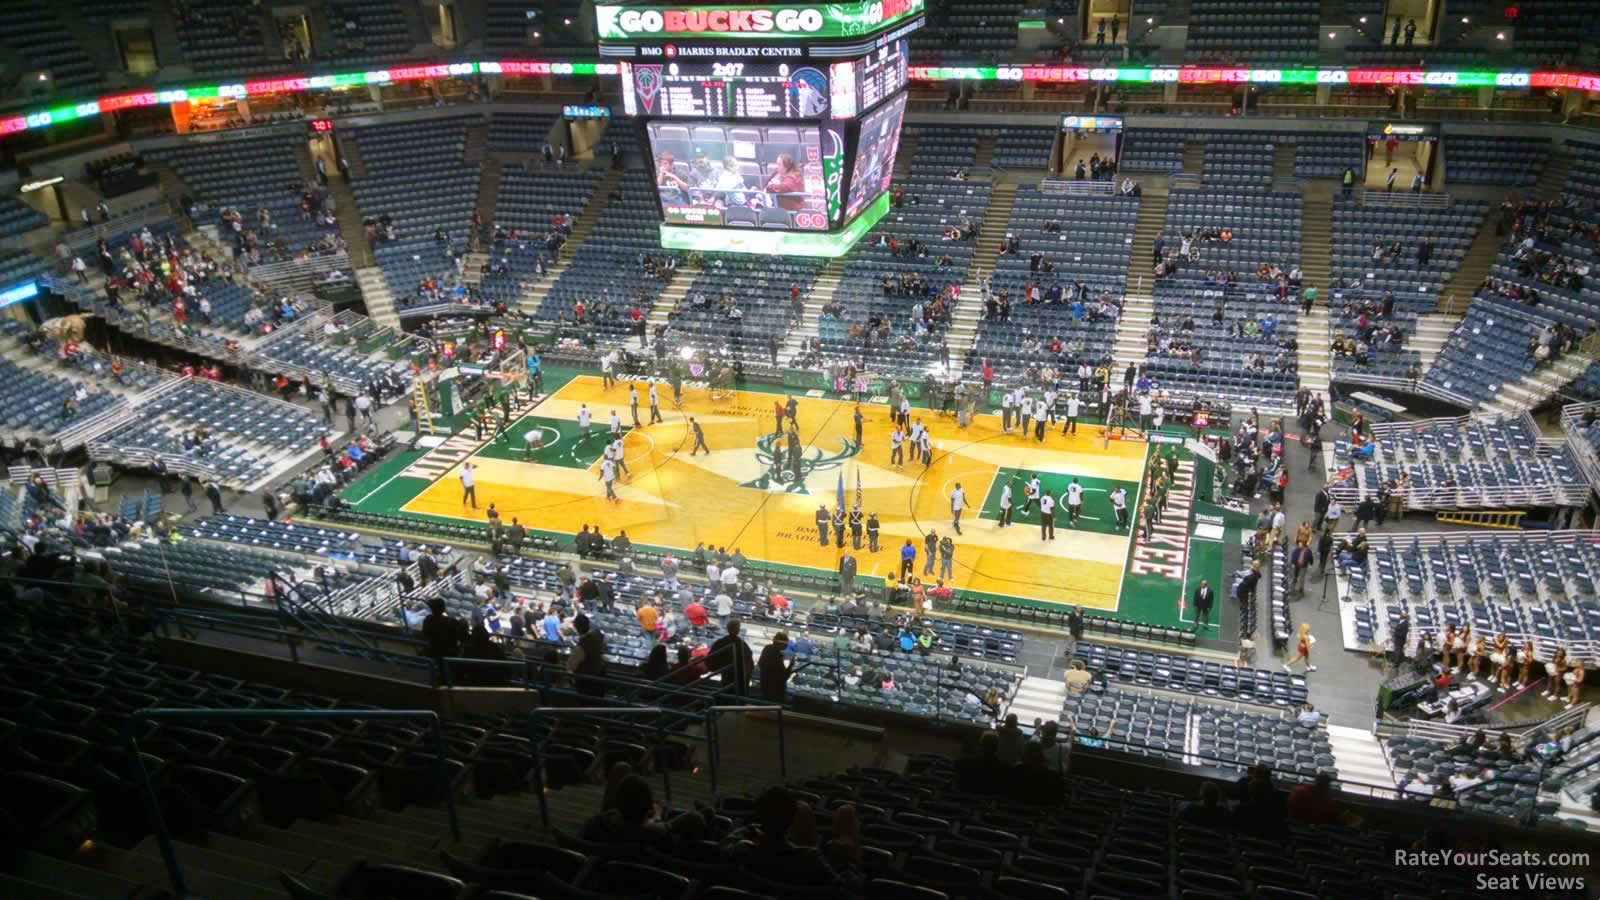 View from Section 420 Row T at the Bradley Center